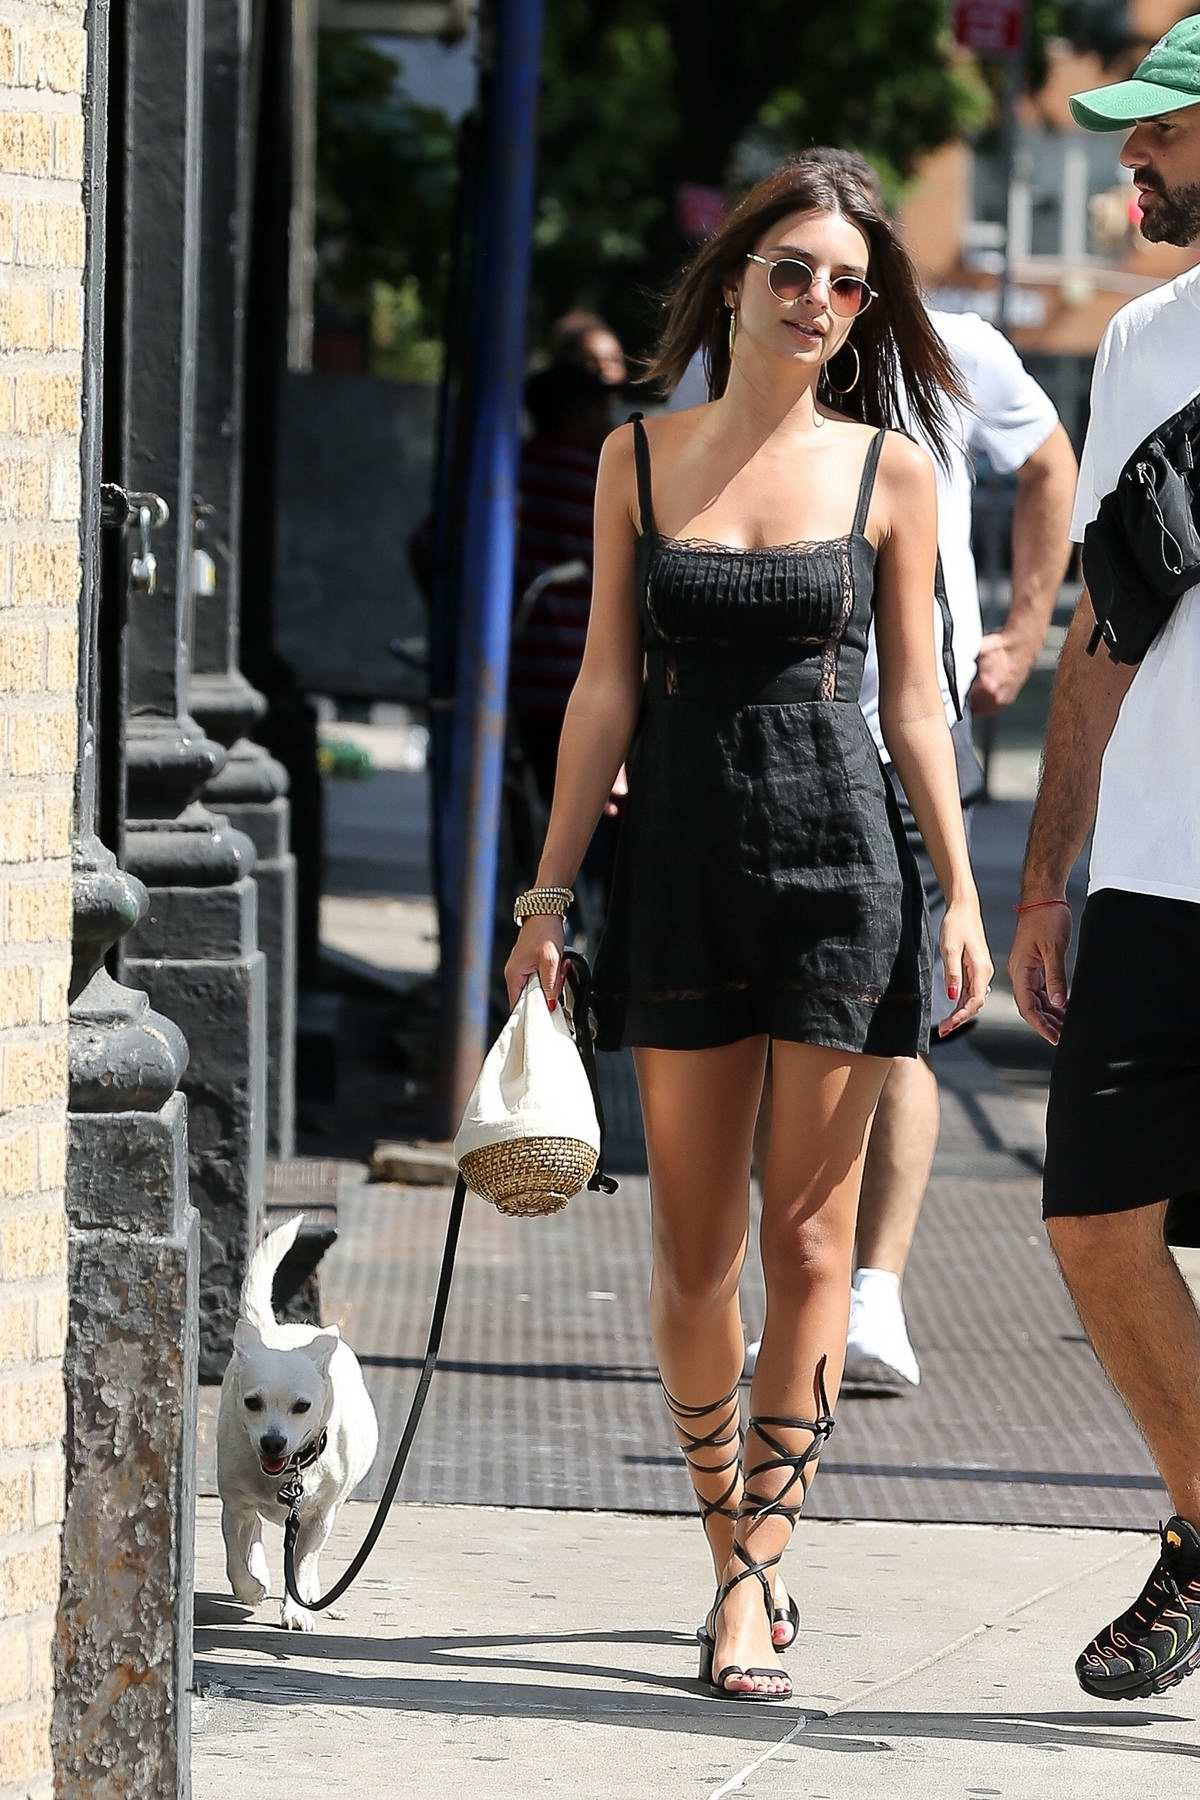 Emily Ratajkowski spotted in LBD while out for a stroll with her dog and a friend in New York City